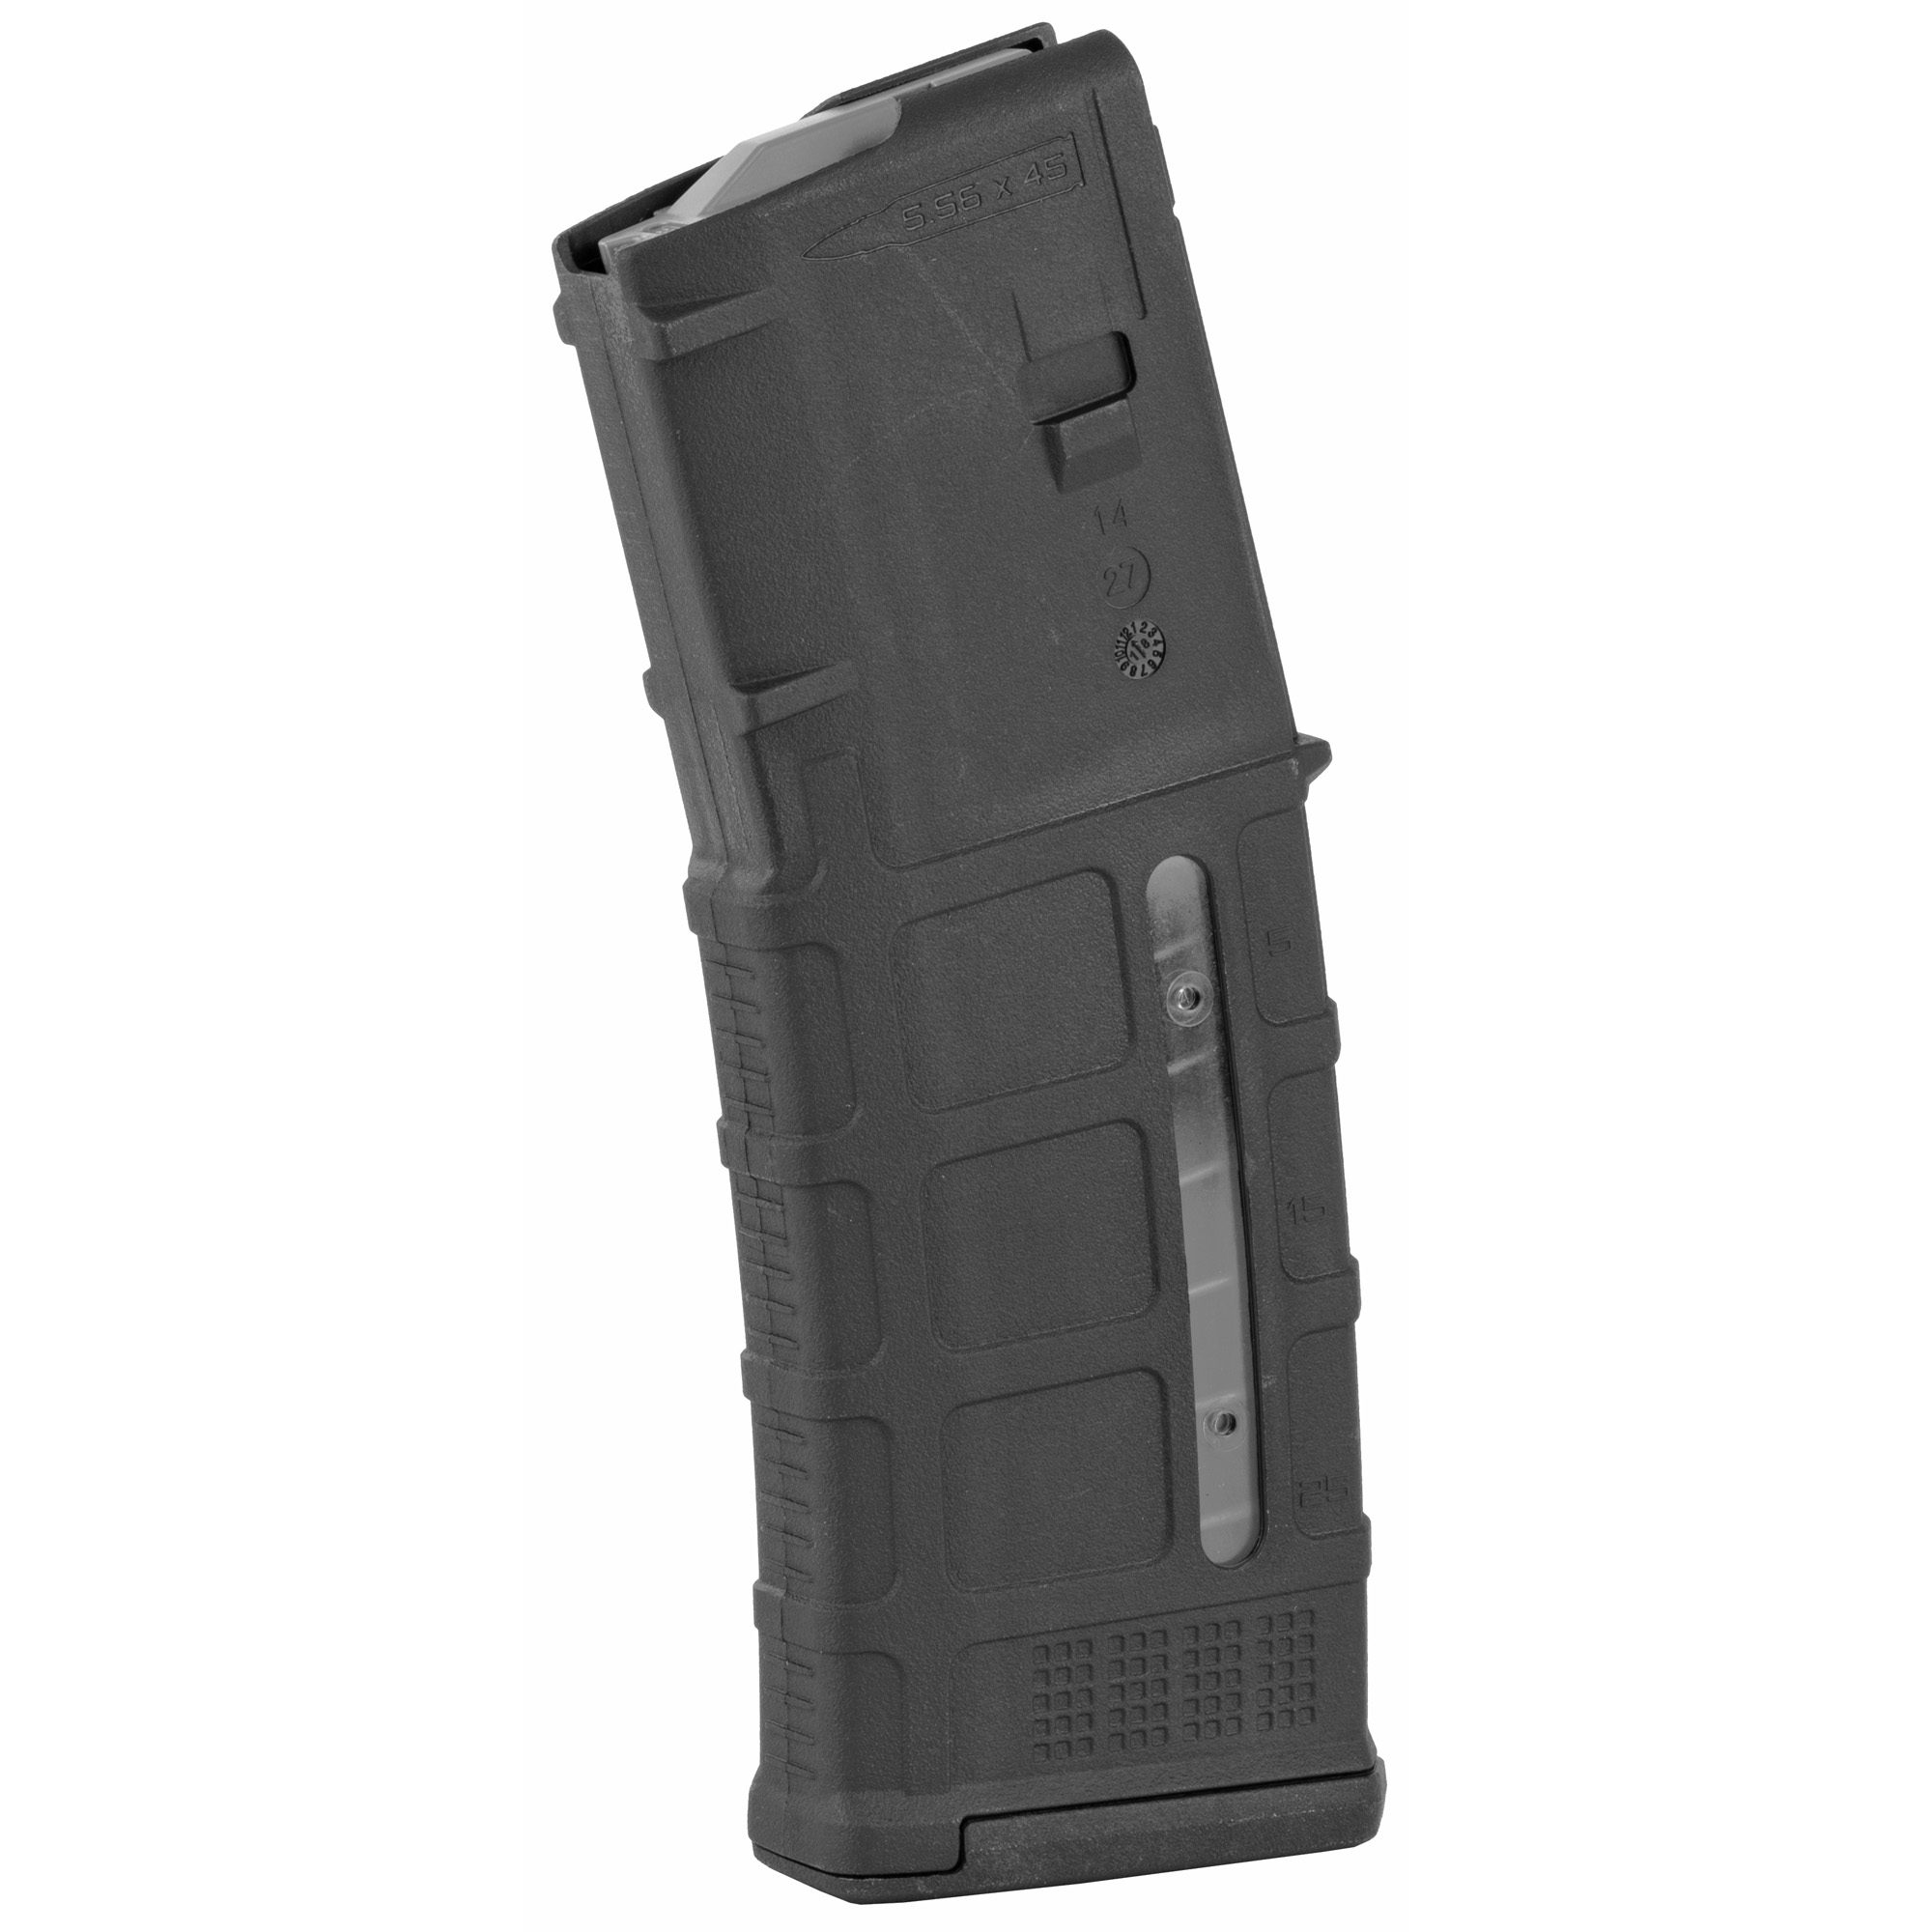 """The next-generation PMAG 30 GEN M3 Window is a 30-round 5.56x45 NATO (.223 Remington) polymer magazine for AR15/M4 compatible weapons that features transparent windows to allow rapid visual identification of approximate number of rounds remaining. Along with expanded feature set and compatibility"""" the GEN M3 Window incorporates new material technology and manufacturing processes for enhanced strength"""" durability"""" and reliability to exceed rigorous military performance specifications. While the GEN M3 is optimized for Colt-spec AR15/M4 platforms"""" modified internal and external geometry also permits operation with a range of additional weapons such as the HK(R) 416/MR556A1/M27 IAR"""" British SA-80"""" FN(R) SCAR(TM) MK 16/16S"""" and others."""